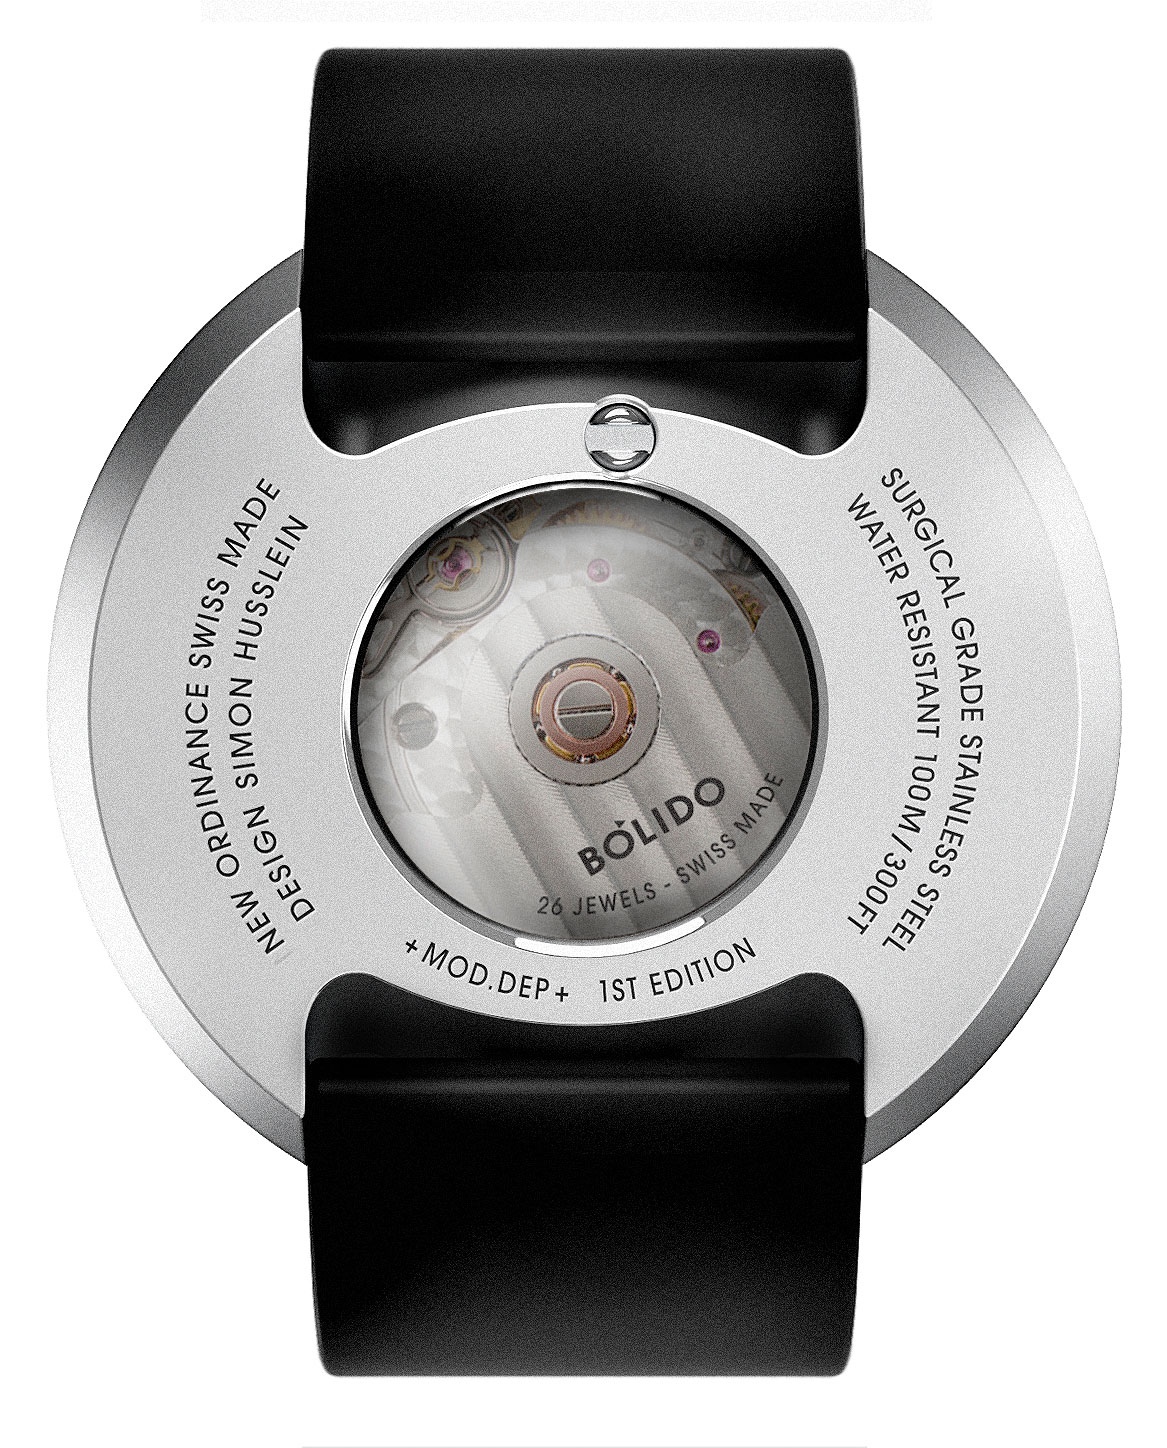 Bolido autoamtic watch Pierre Nobs 3